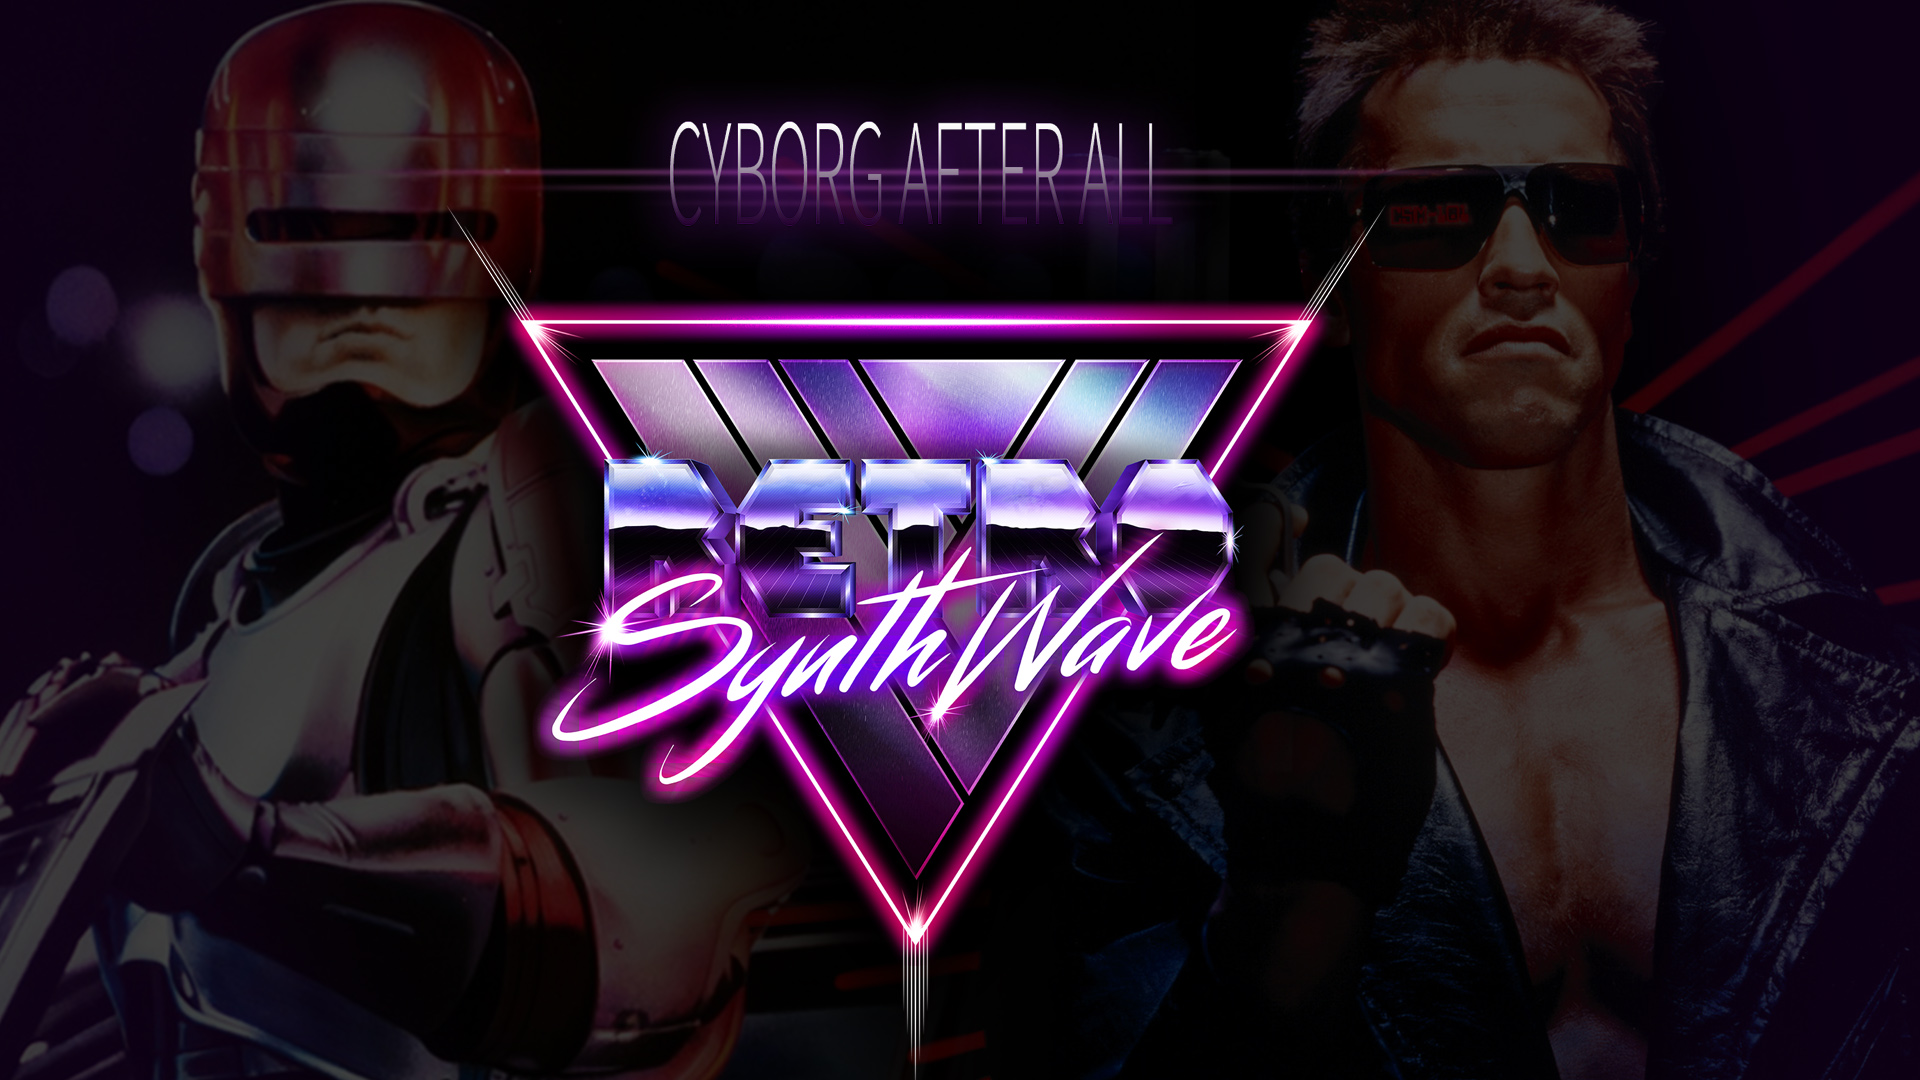 Exclusive Mixtape Cyborg After All Retro Synthwave